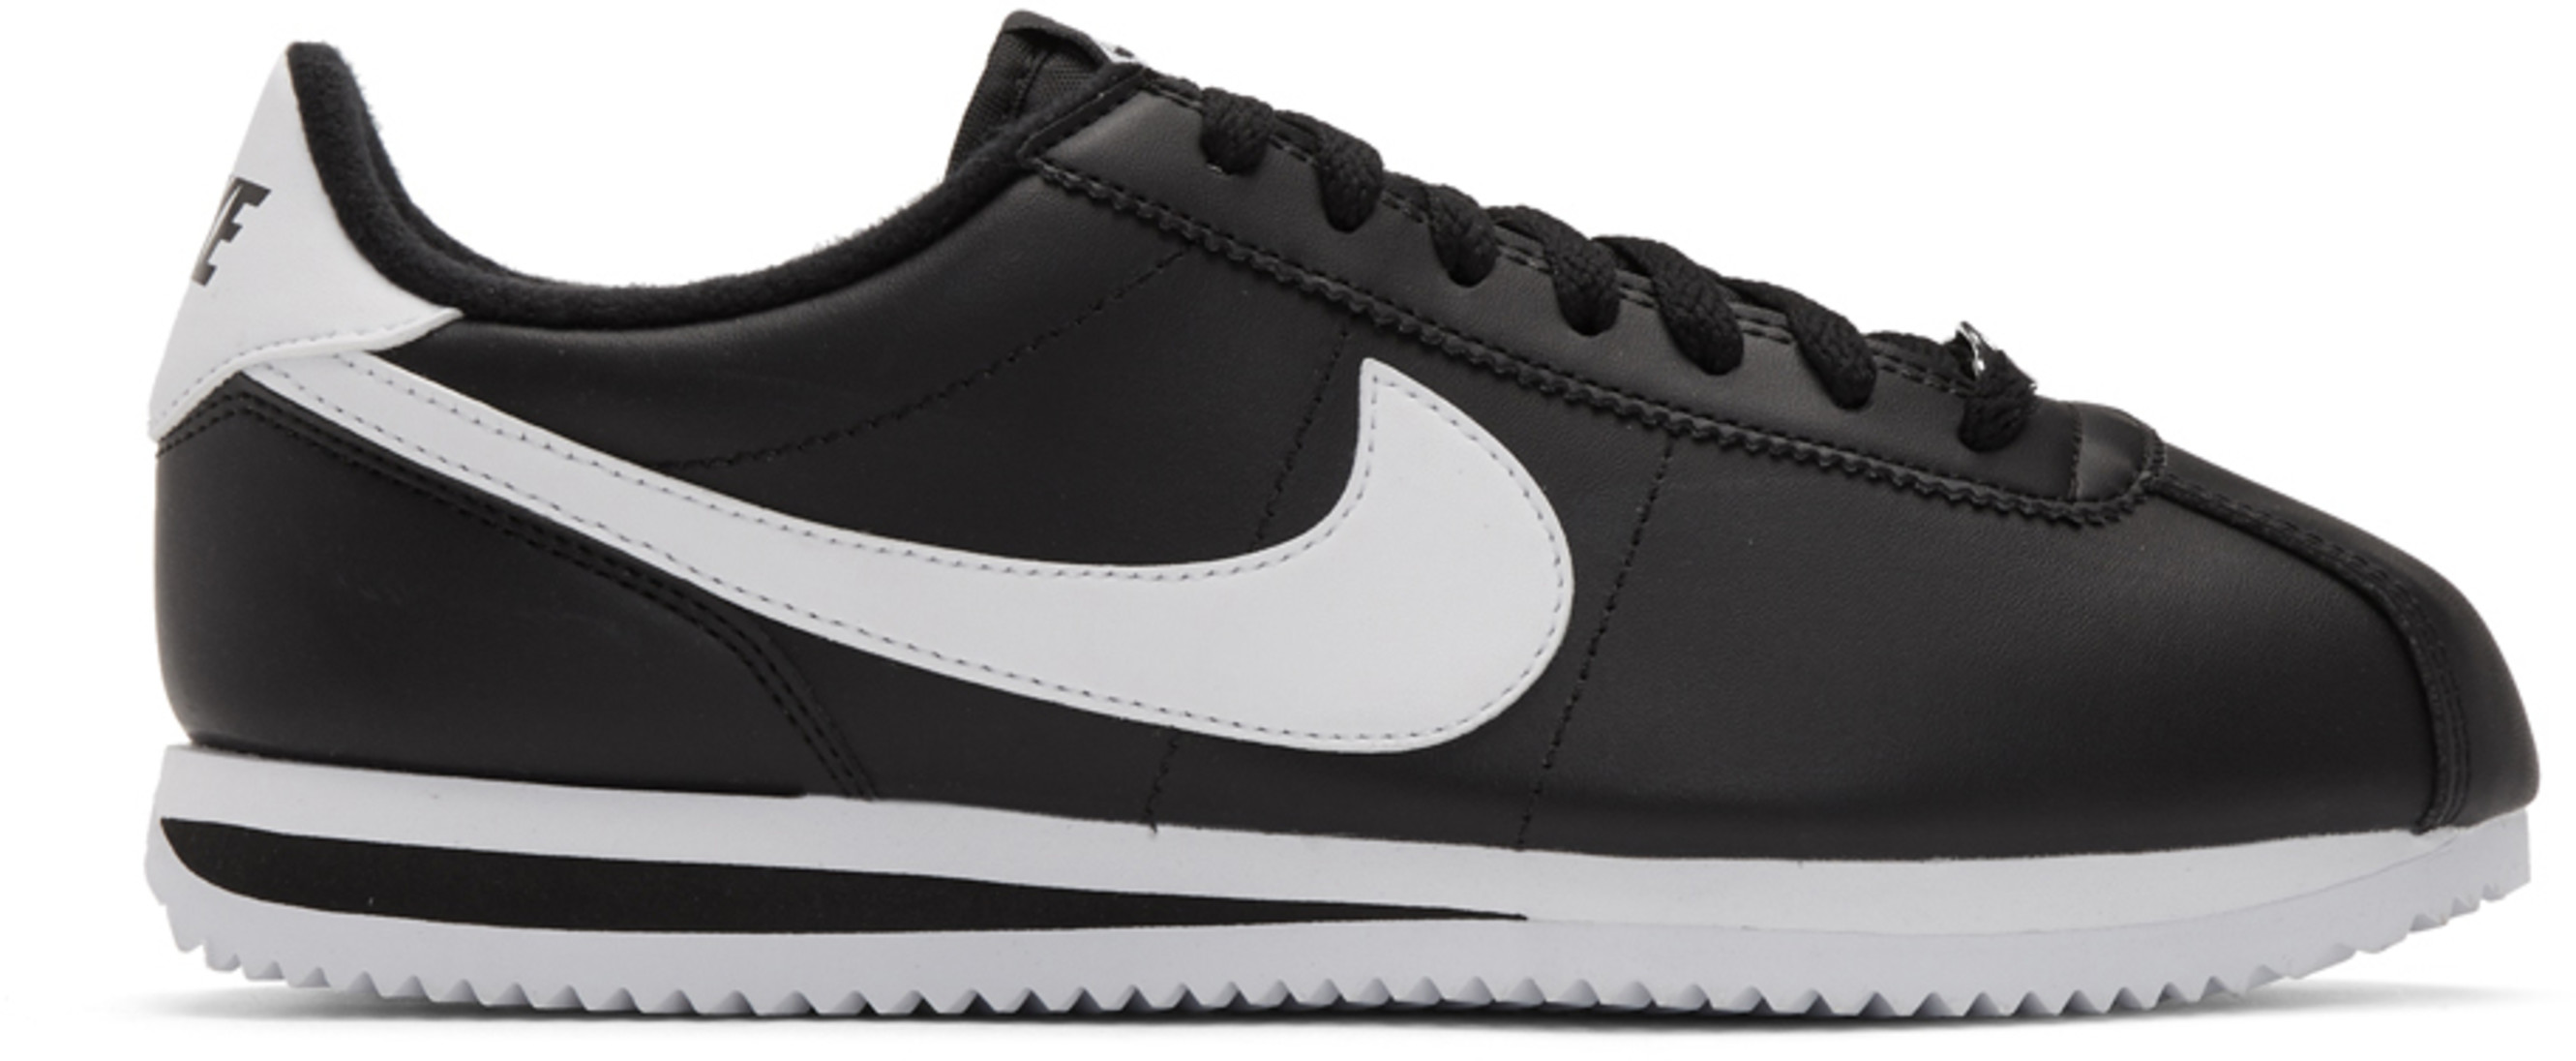 e6fc0a10c759 Nike for Men SS19 Collection